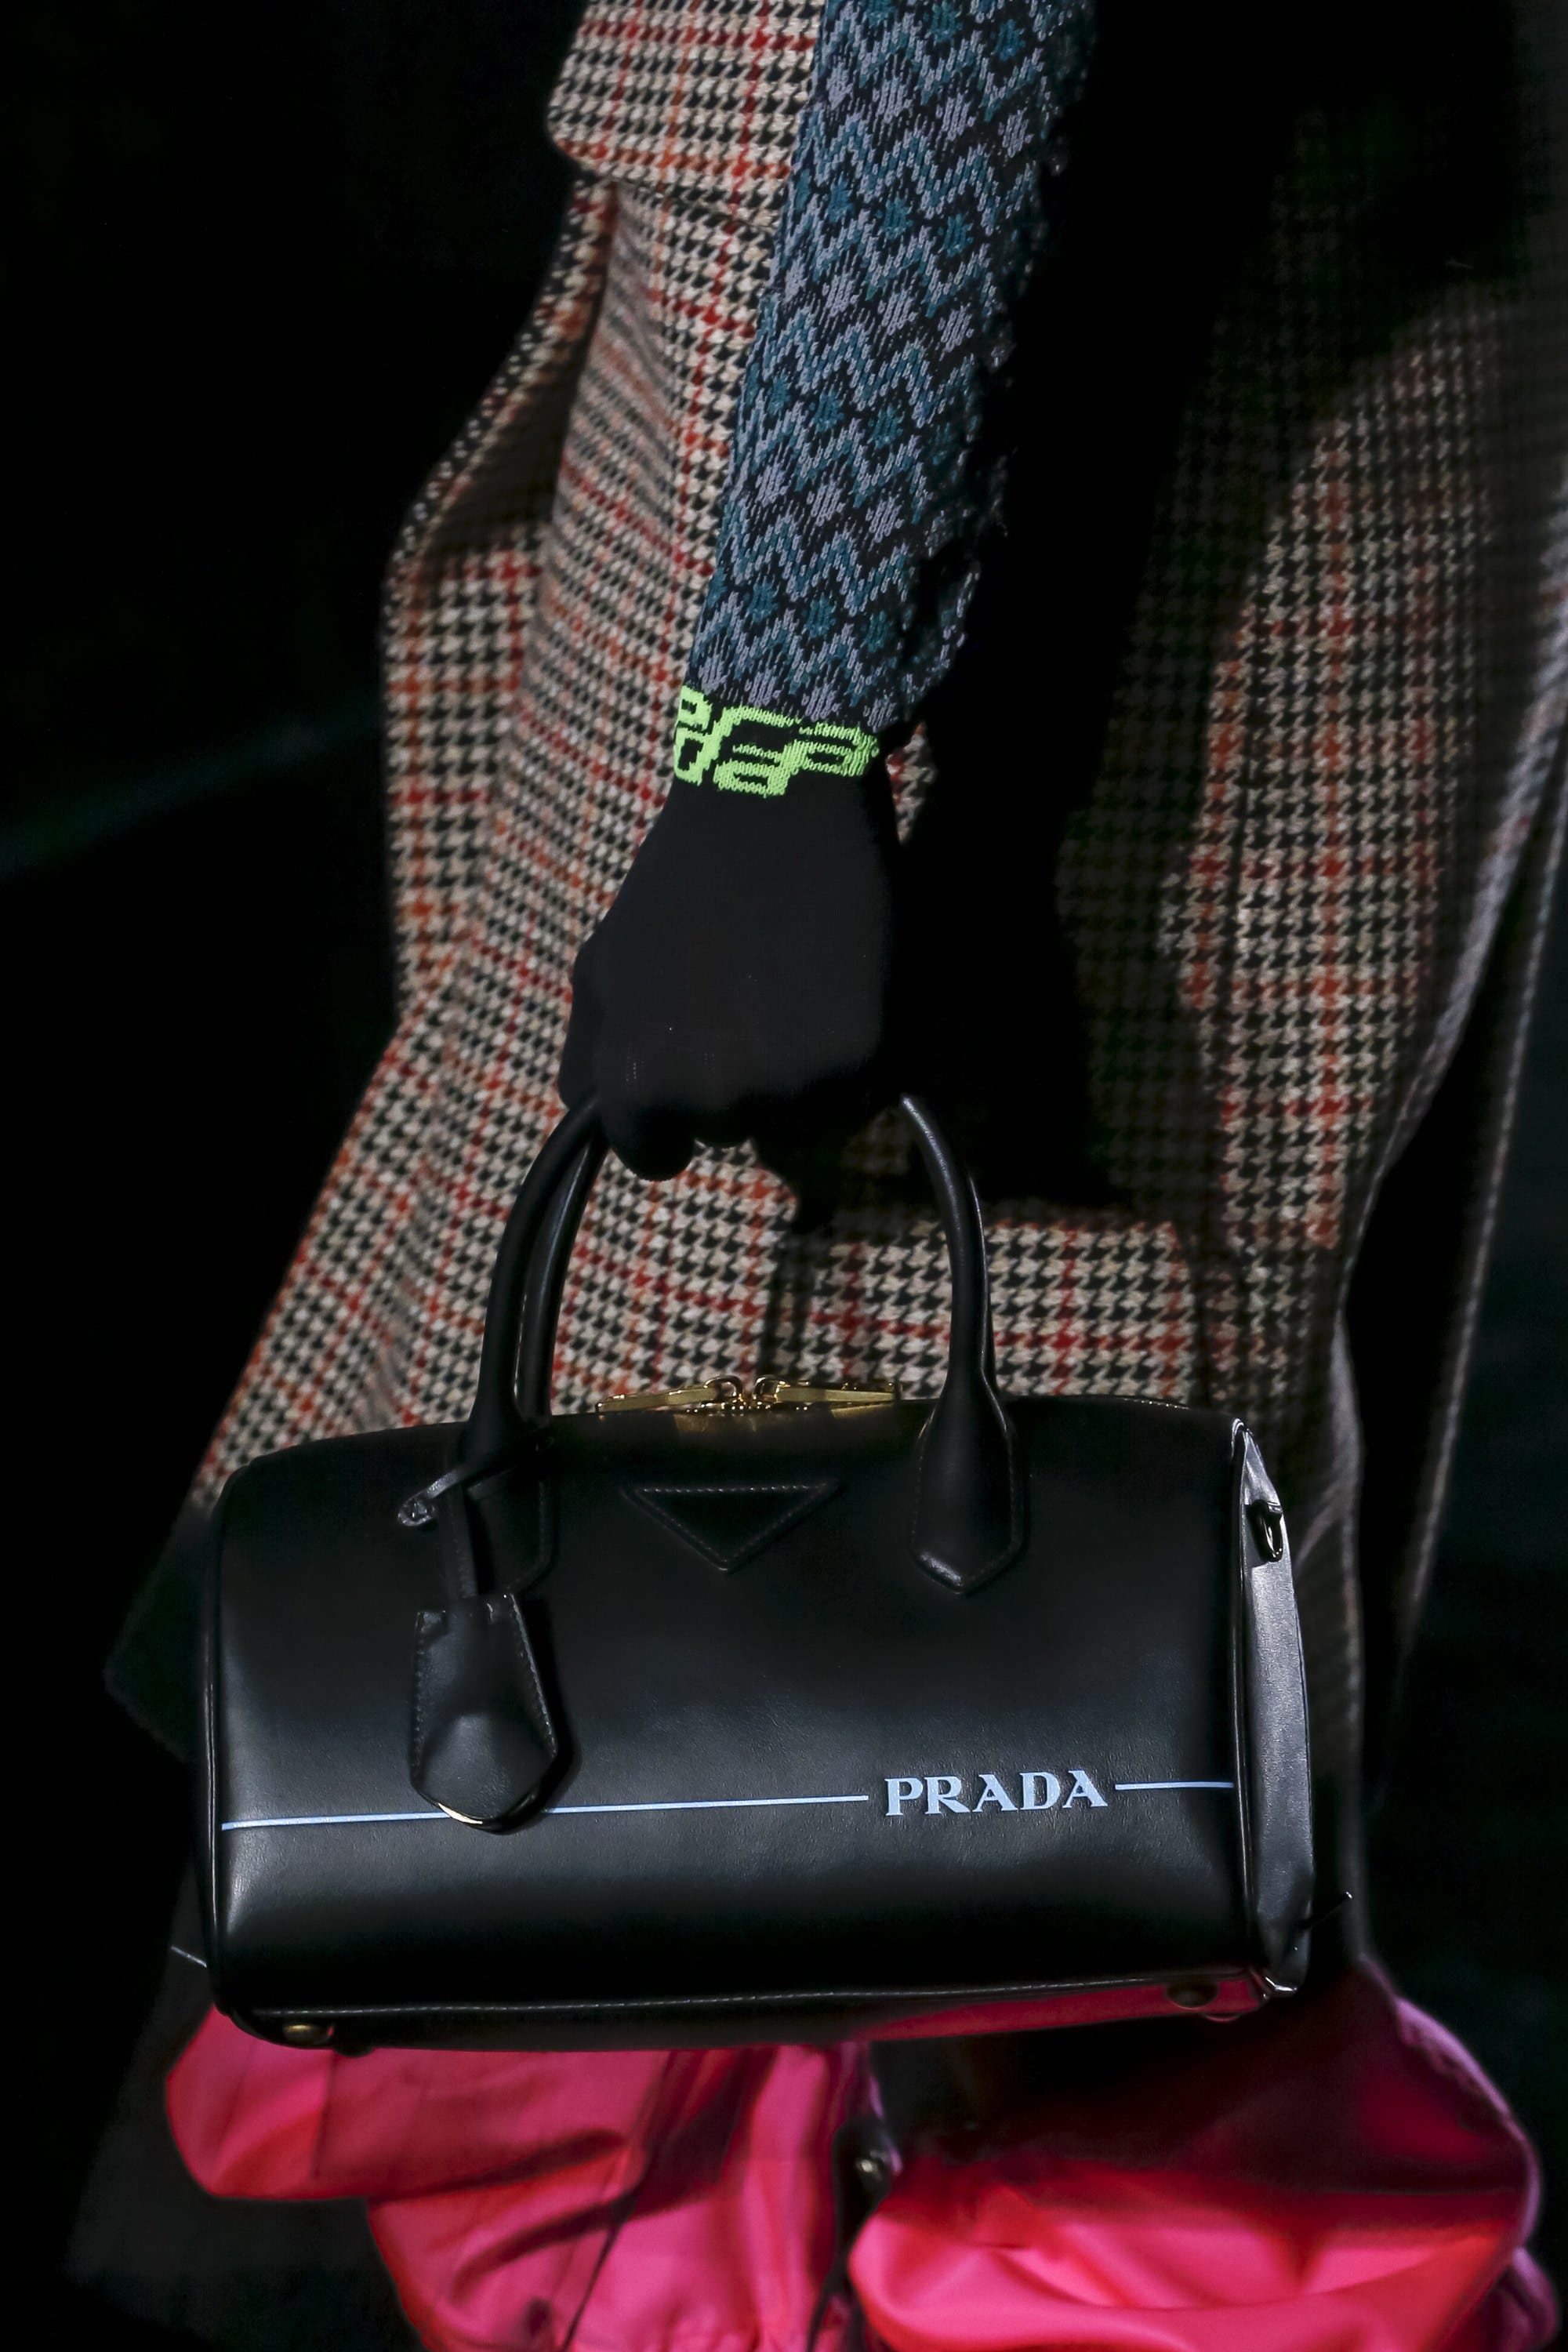 Prada Fall Winter 2018 Runway Bag Collection Spotted Fashion